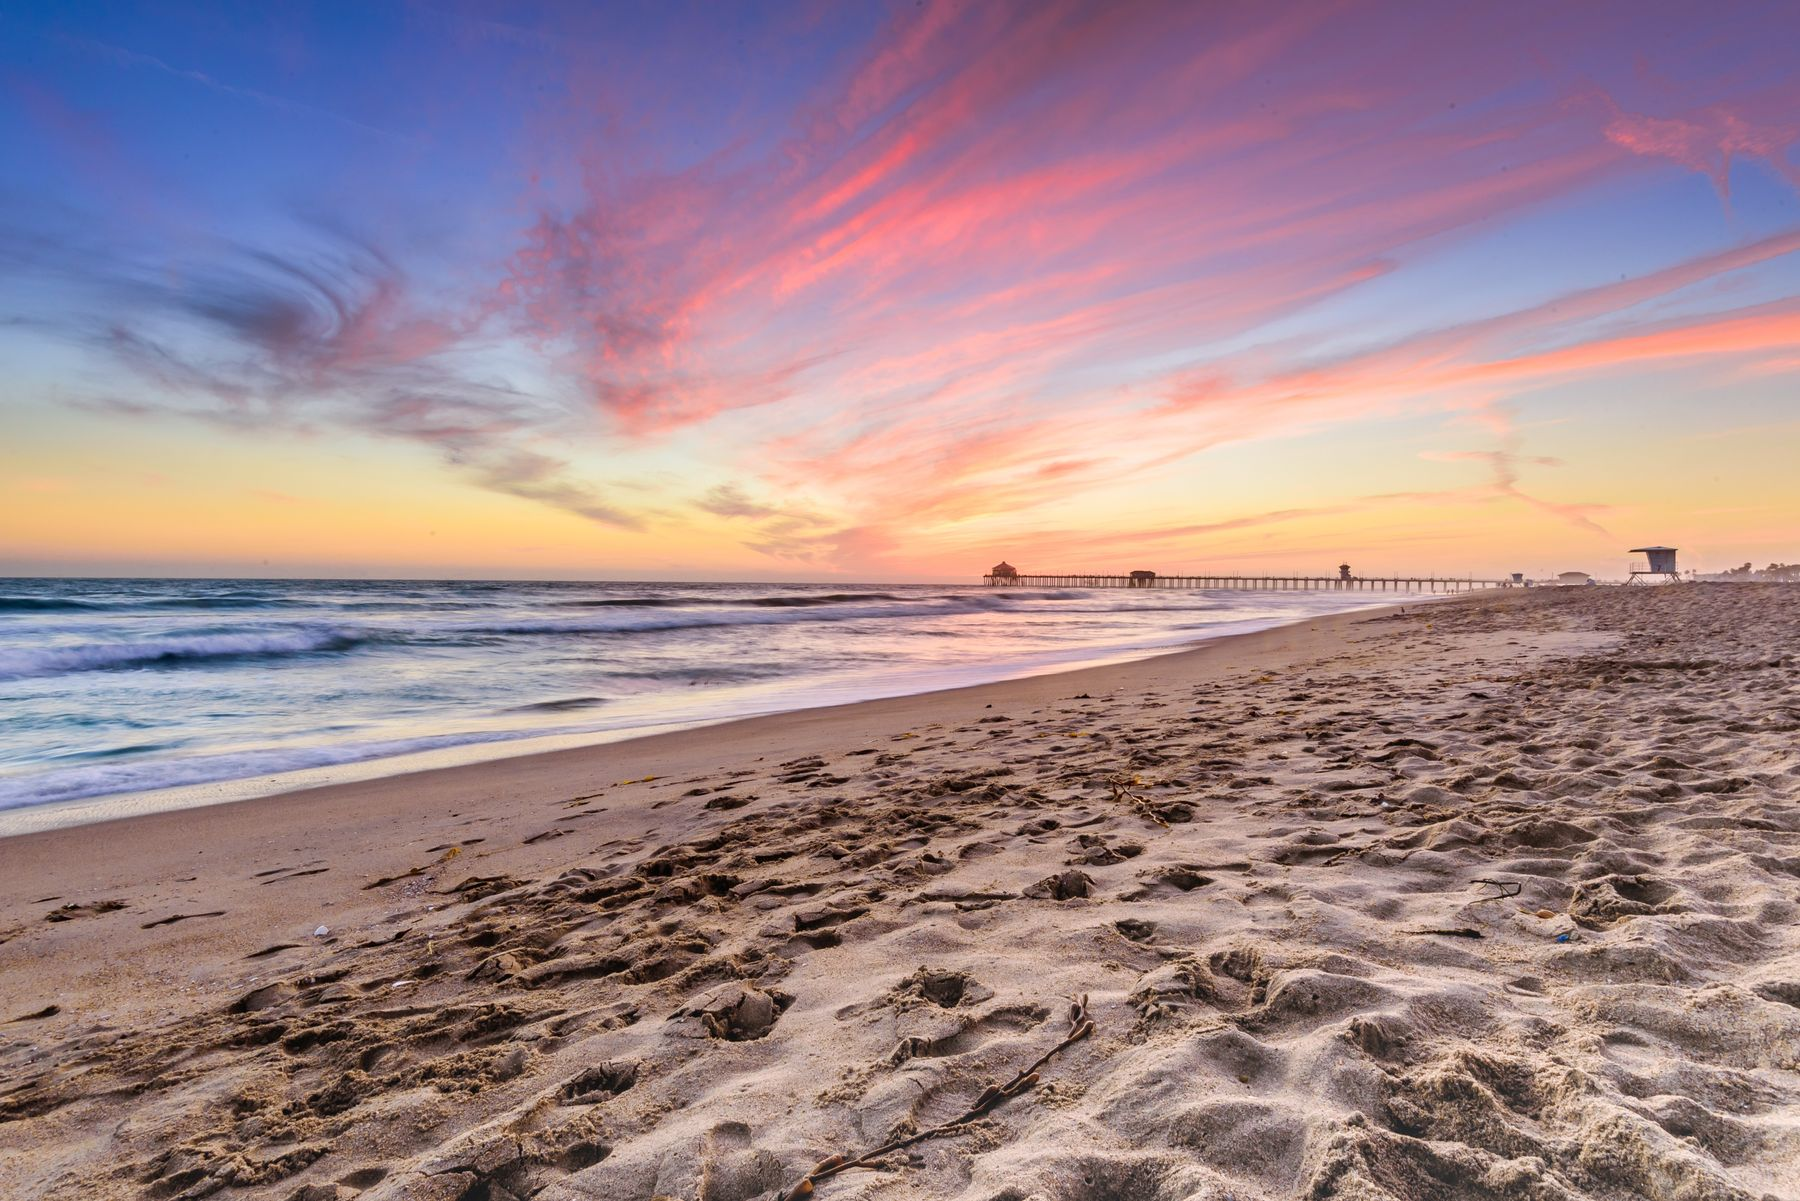 A colourful sunset at the beach